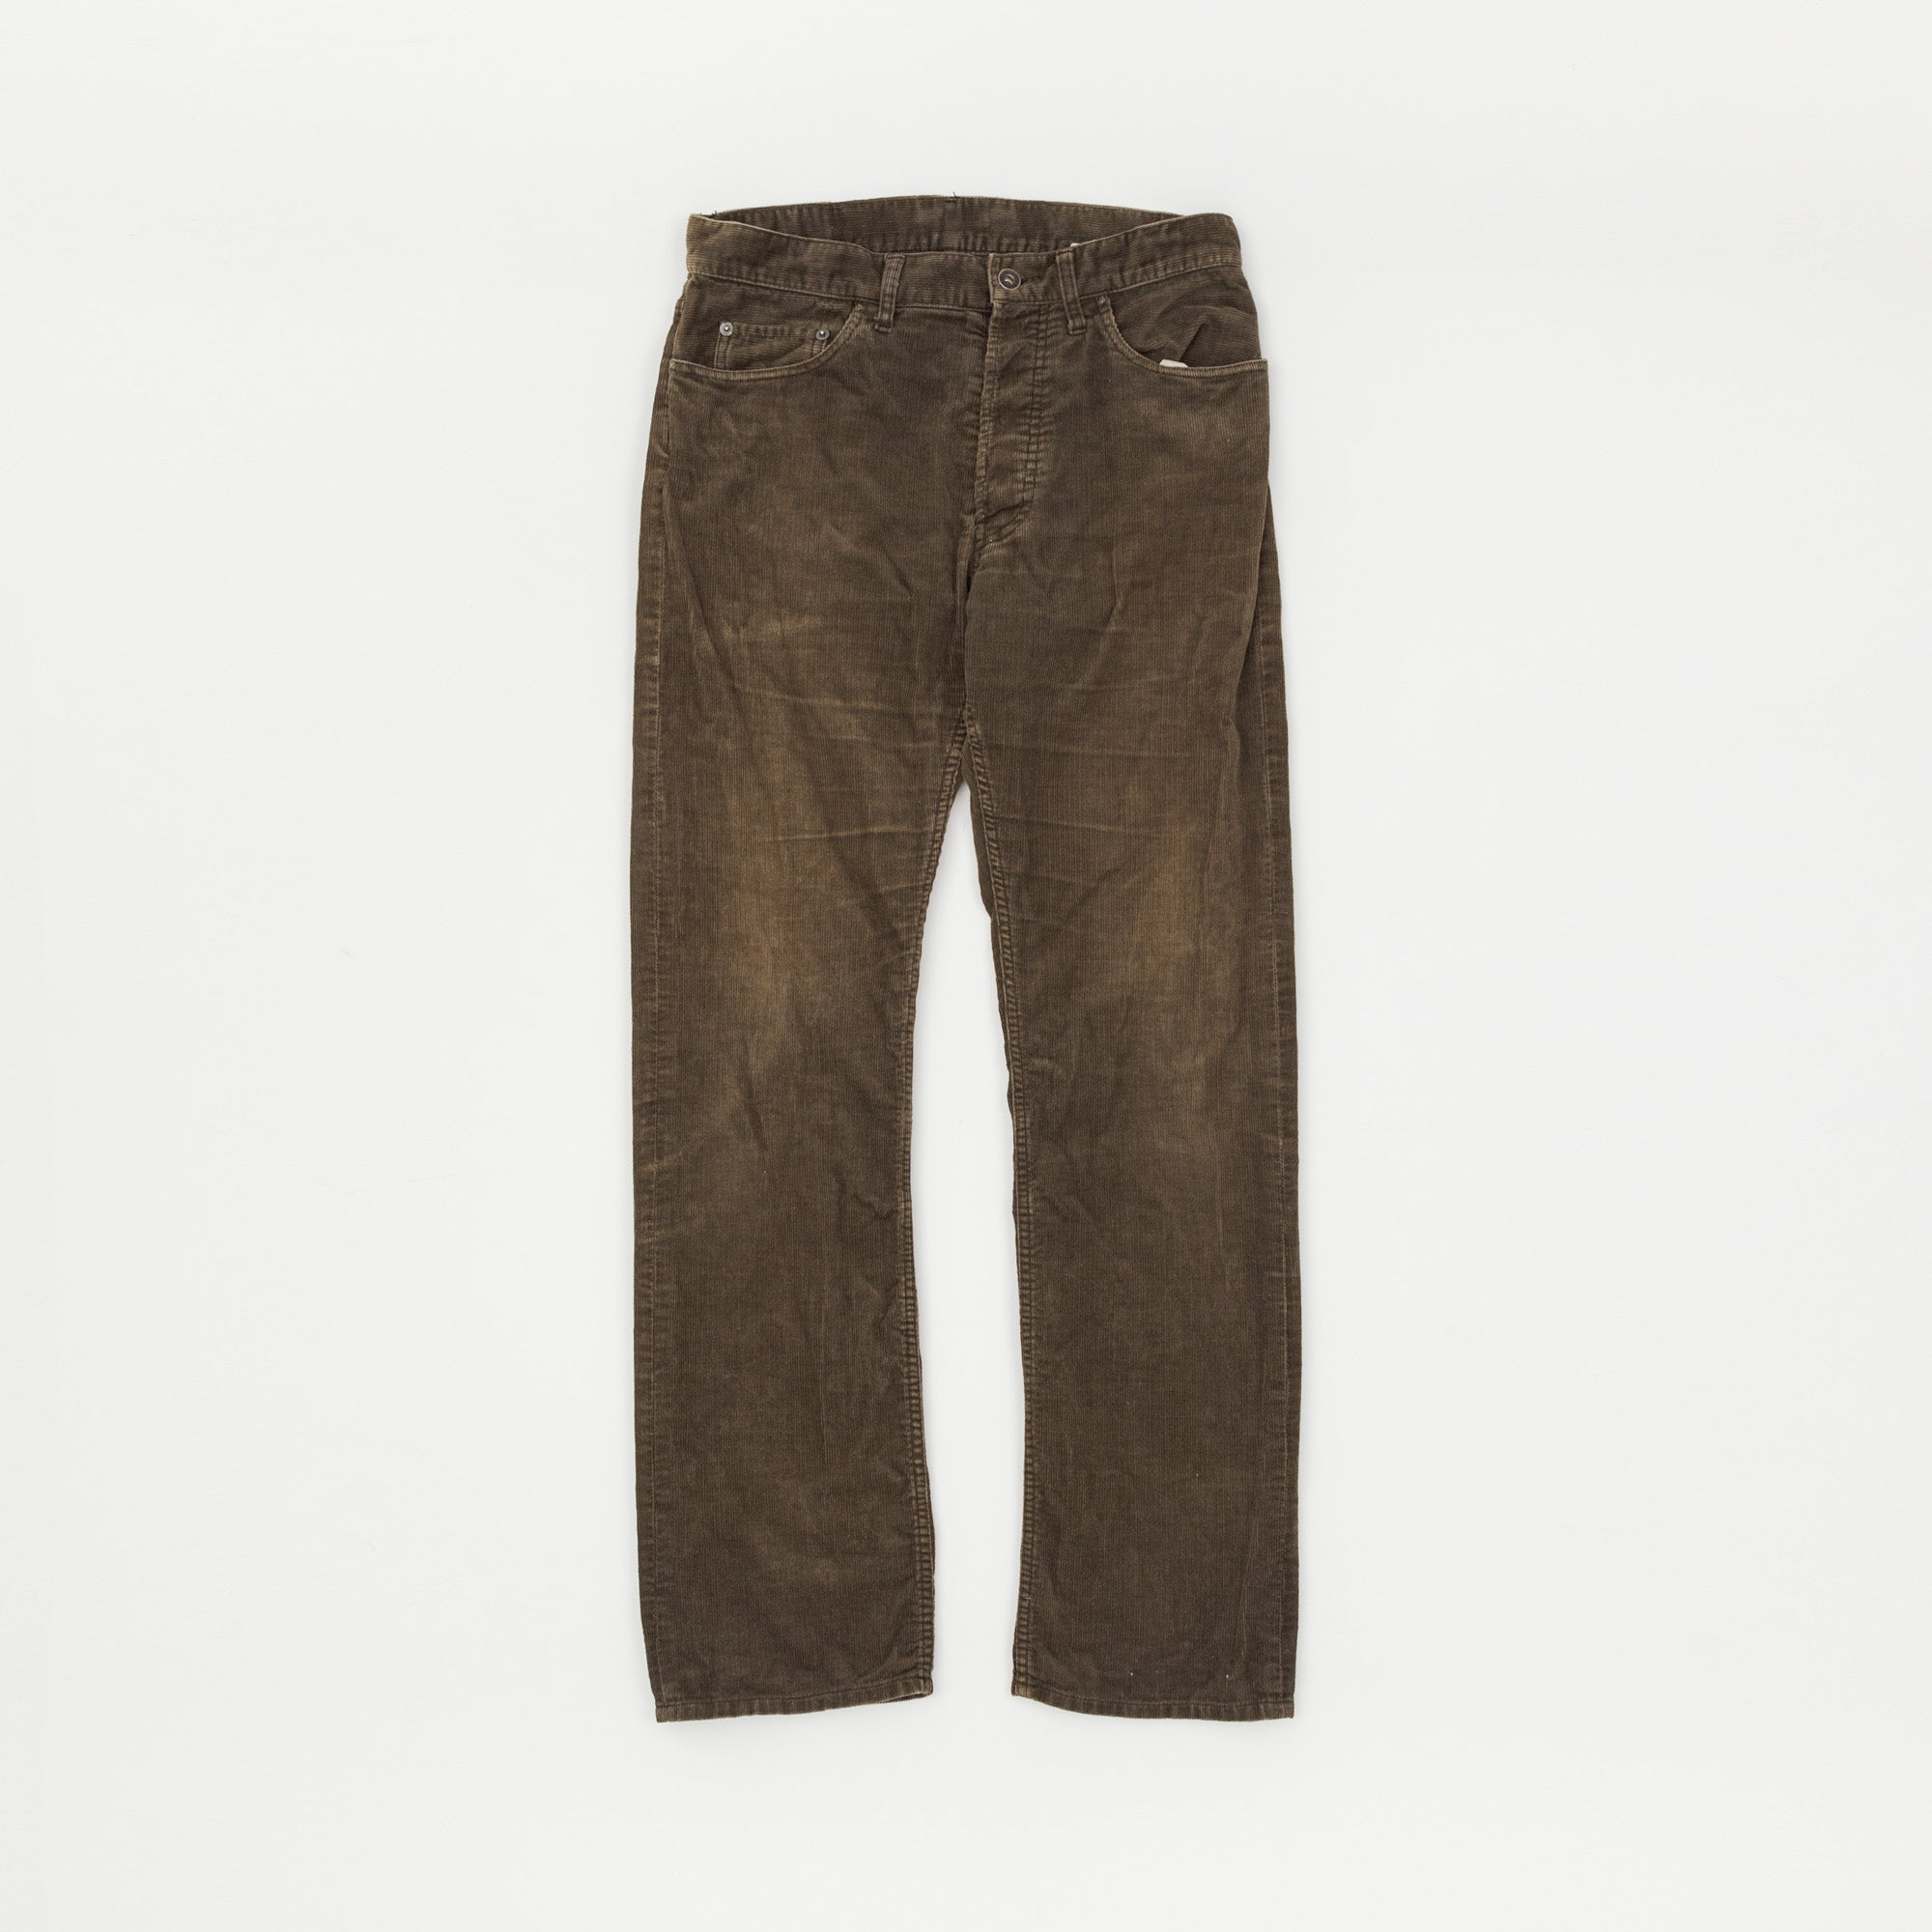 Workaday 5 Pocket Bedford Cord Trousers